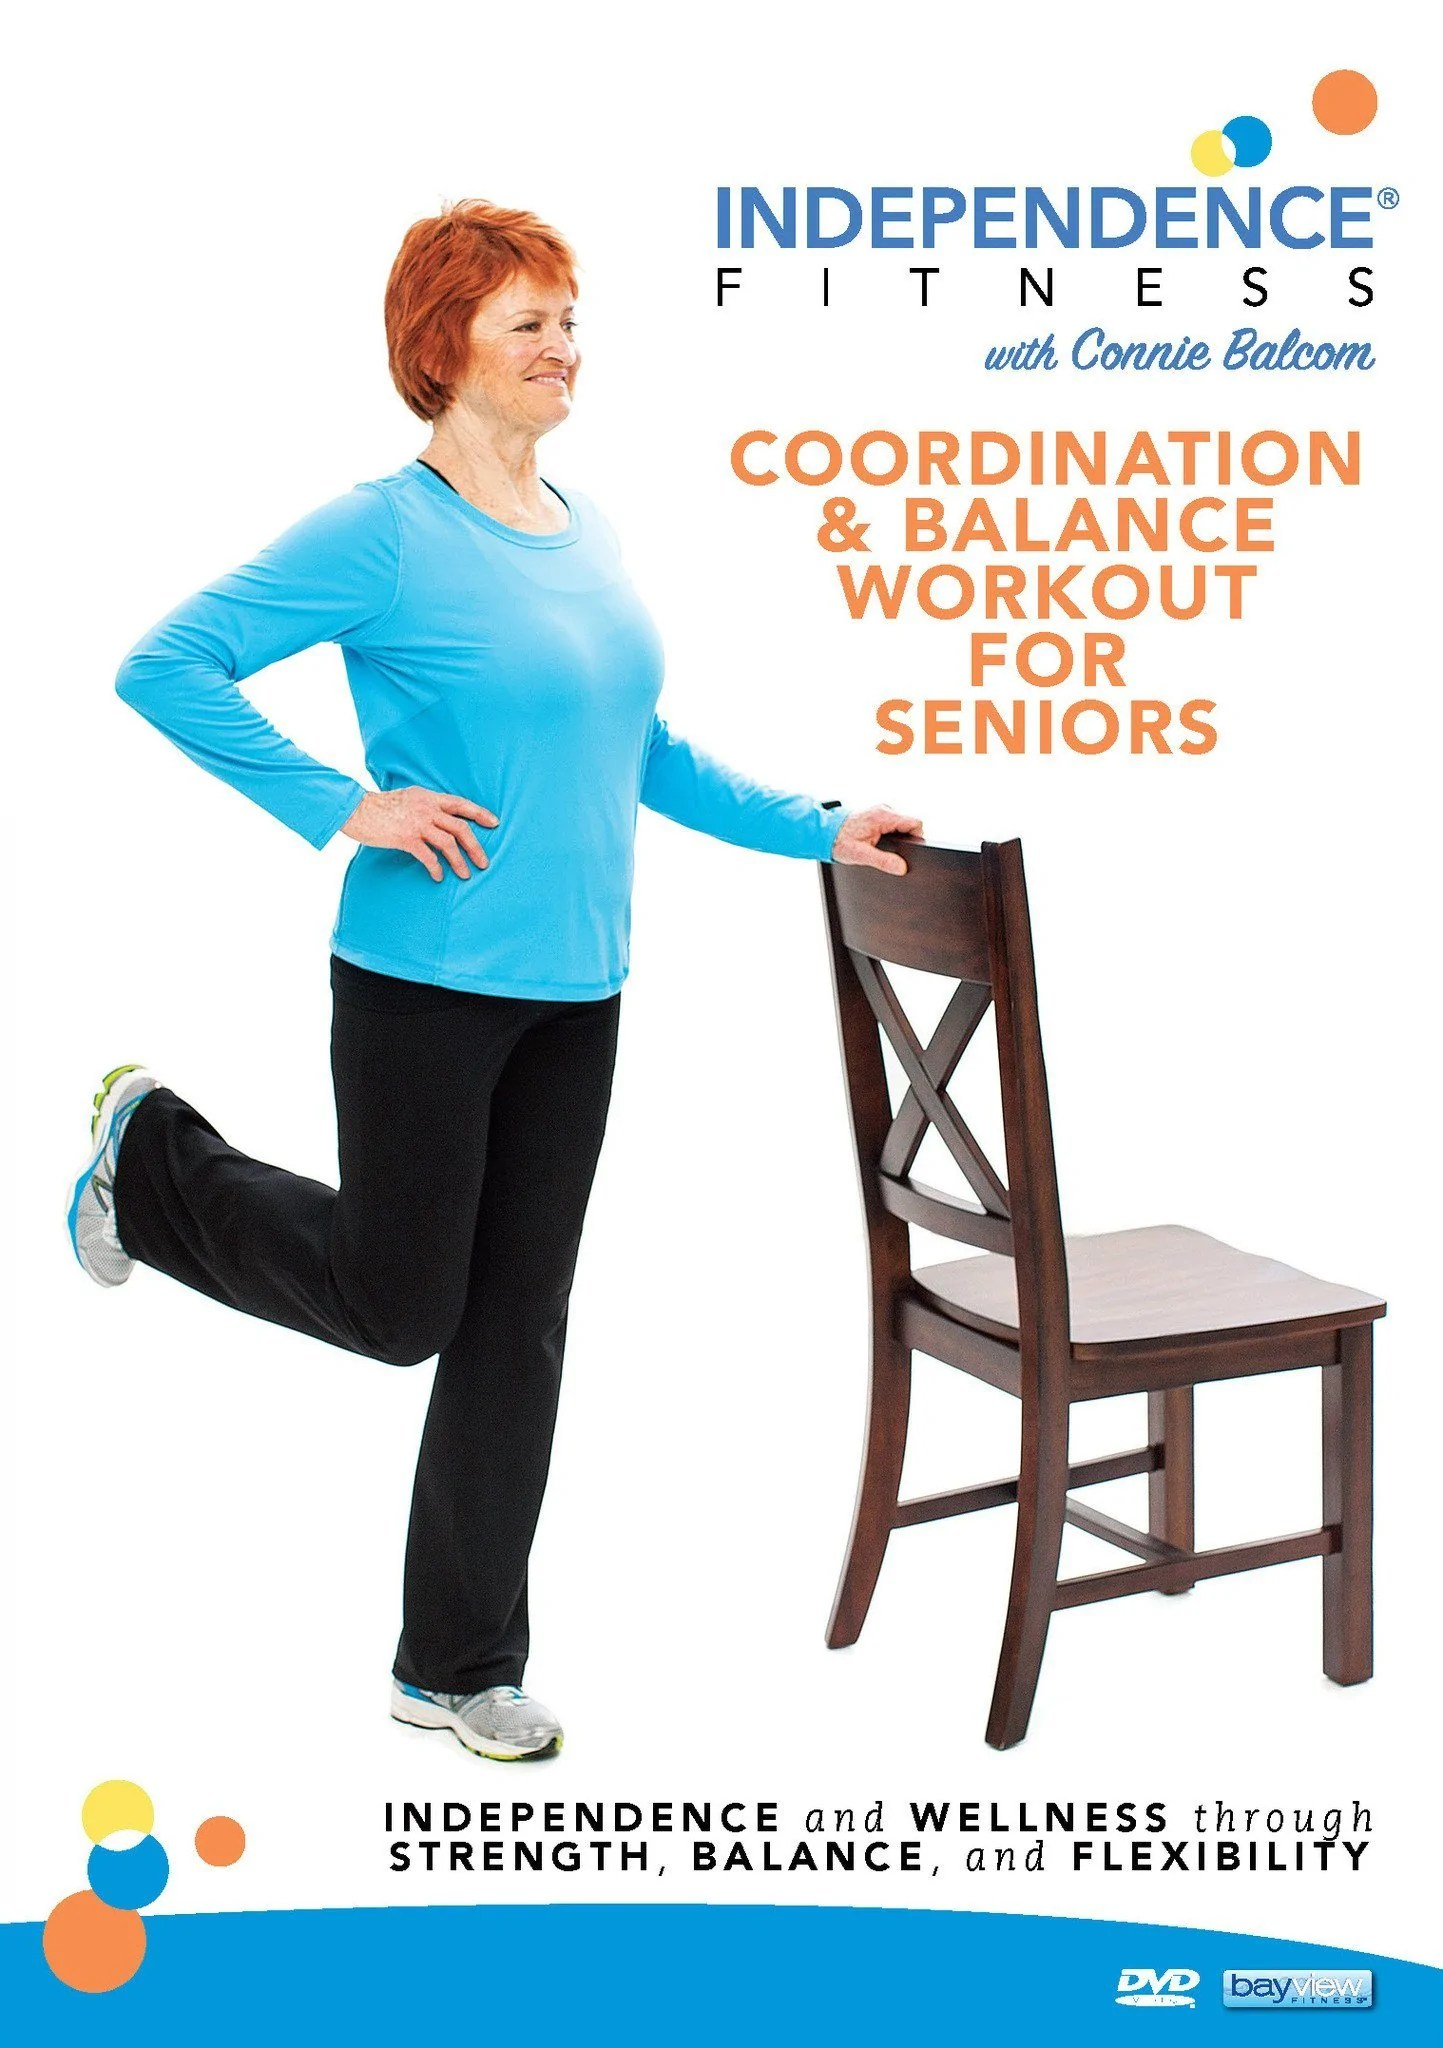 chair gym workout videos hanging outdoor uk workouts for seniors collage video independence fitness coordination balance